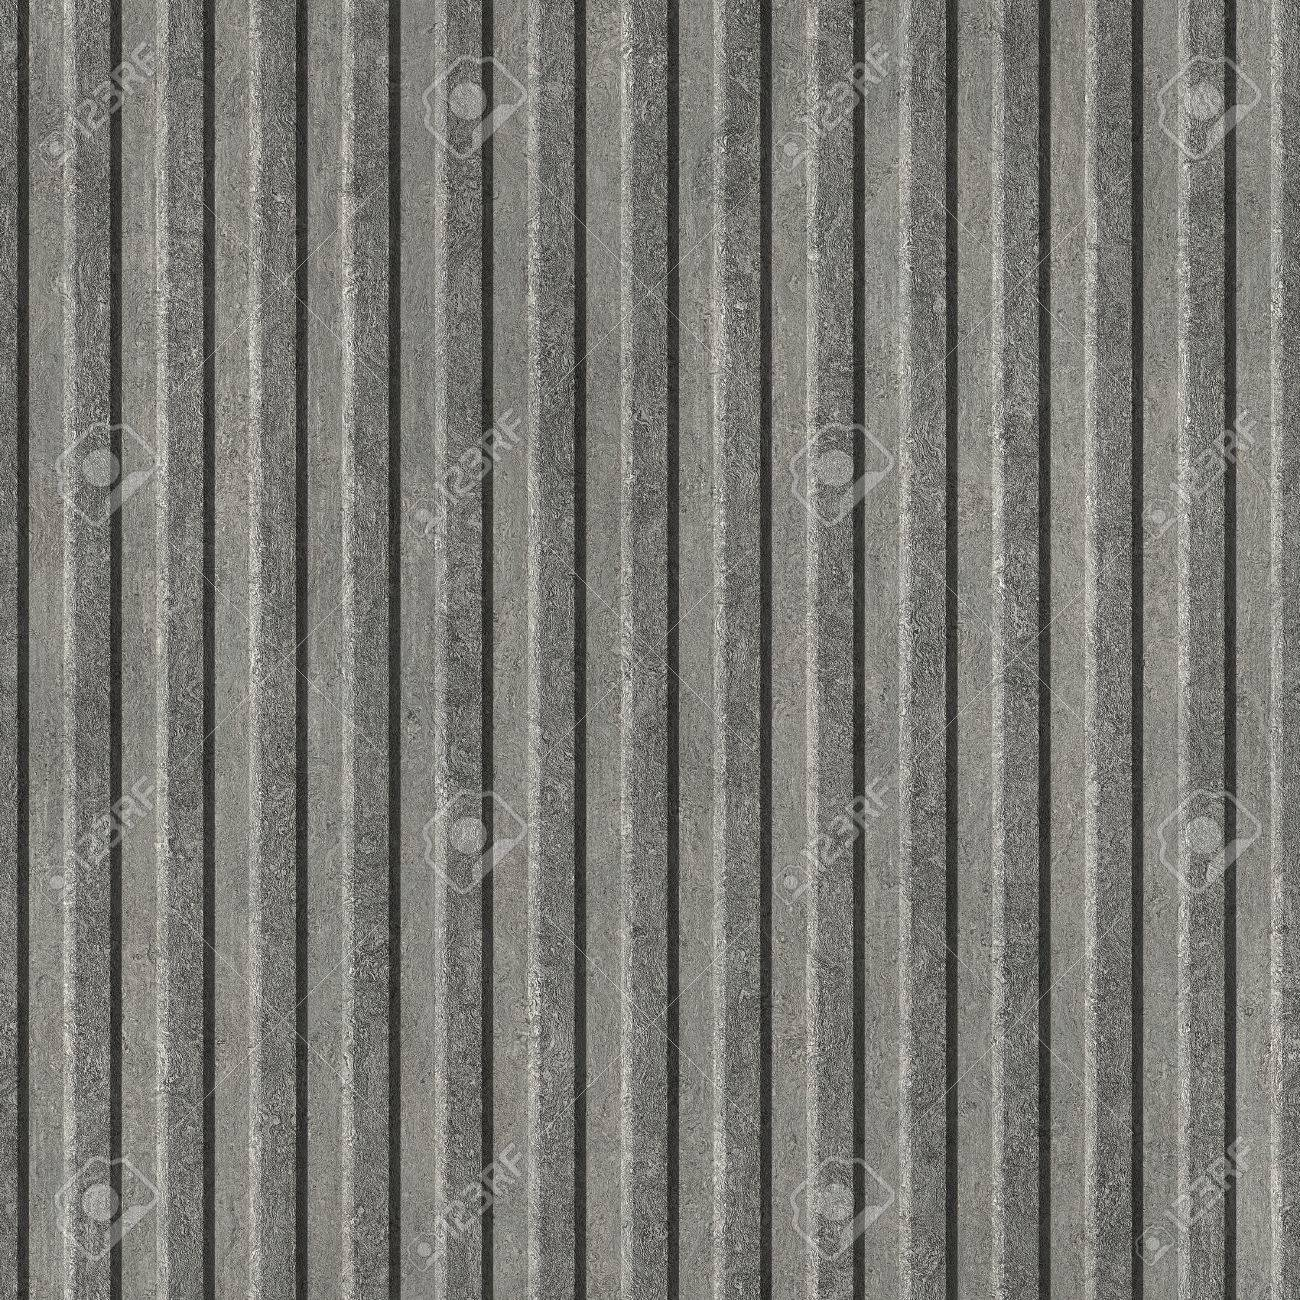 Corrugated metal  Seamless texture  Stock Photo   16030912. Corrugated Metal  Seamless Texture  Stock Photo  Picture And